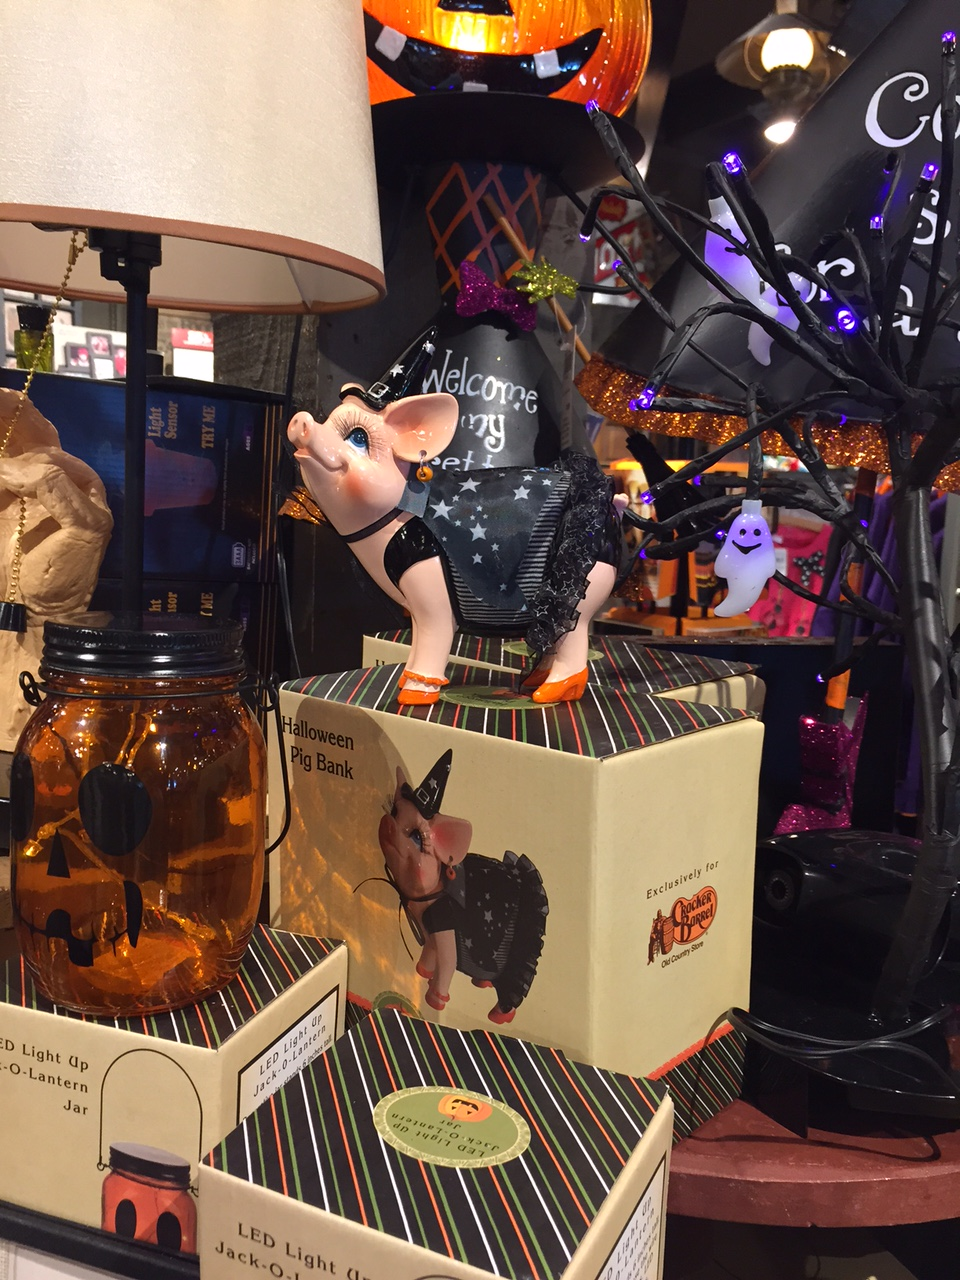 cracker barrel has out its halloween offerings and heres some snaps of the goodies you can get the haunted lamp at the bottom was intriguing